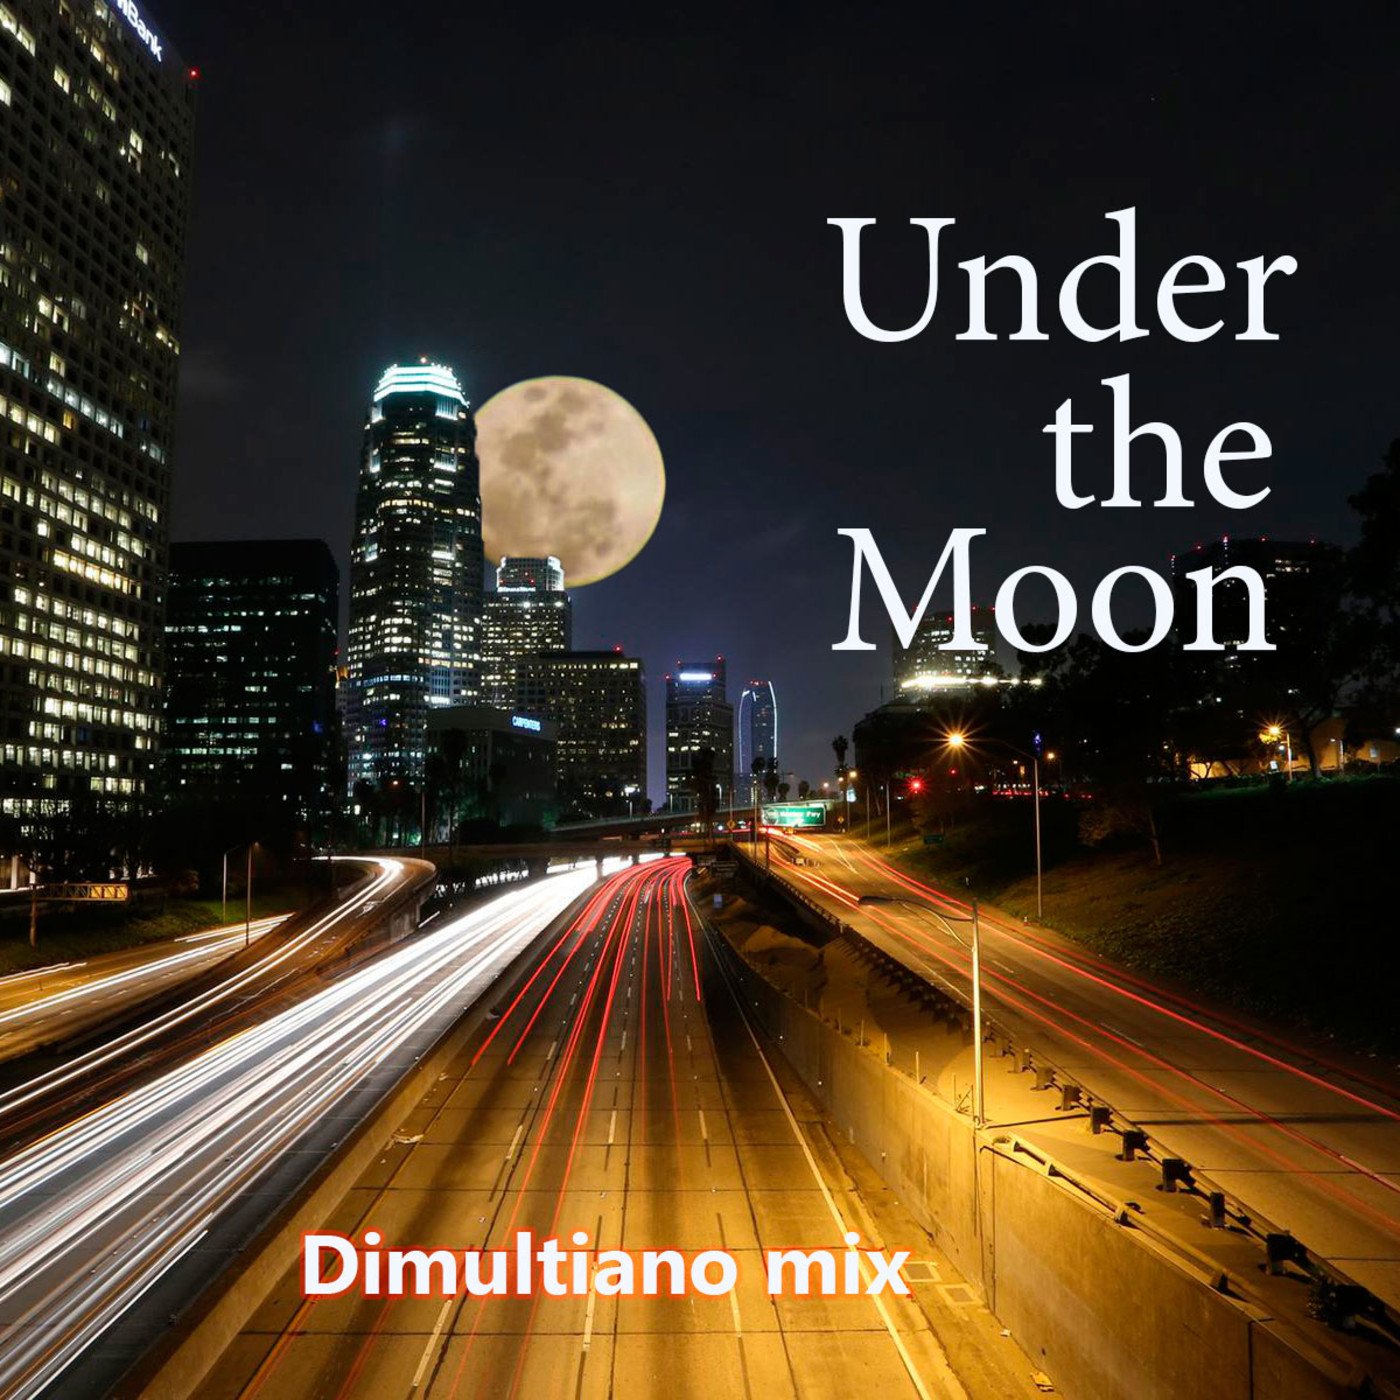 Dimultiano mix - Under the Moon